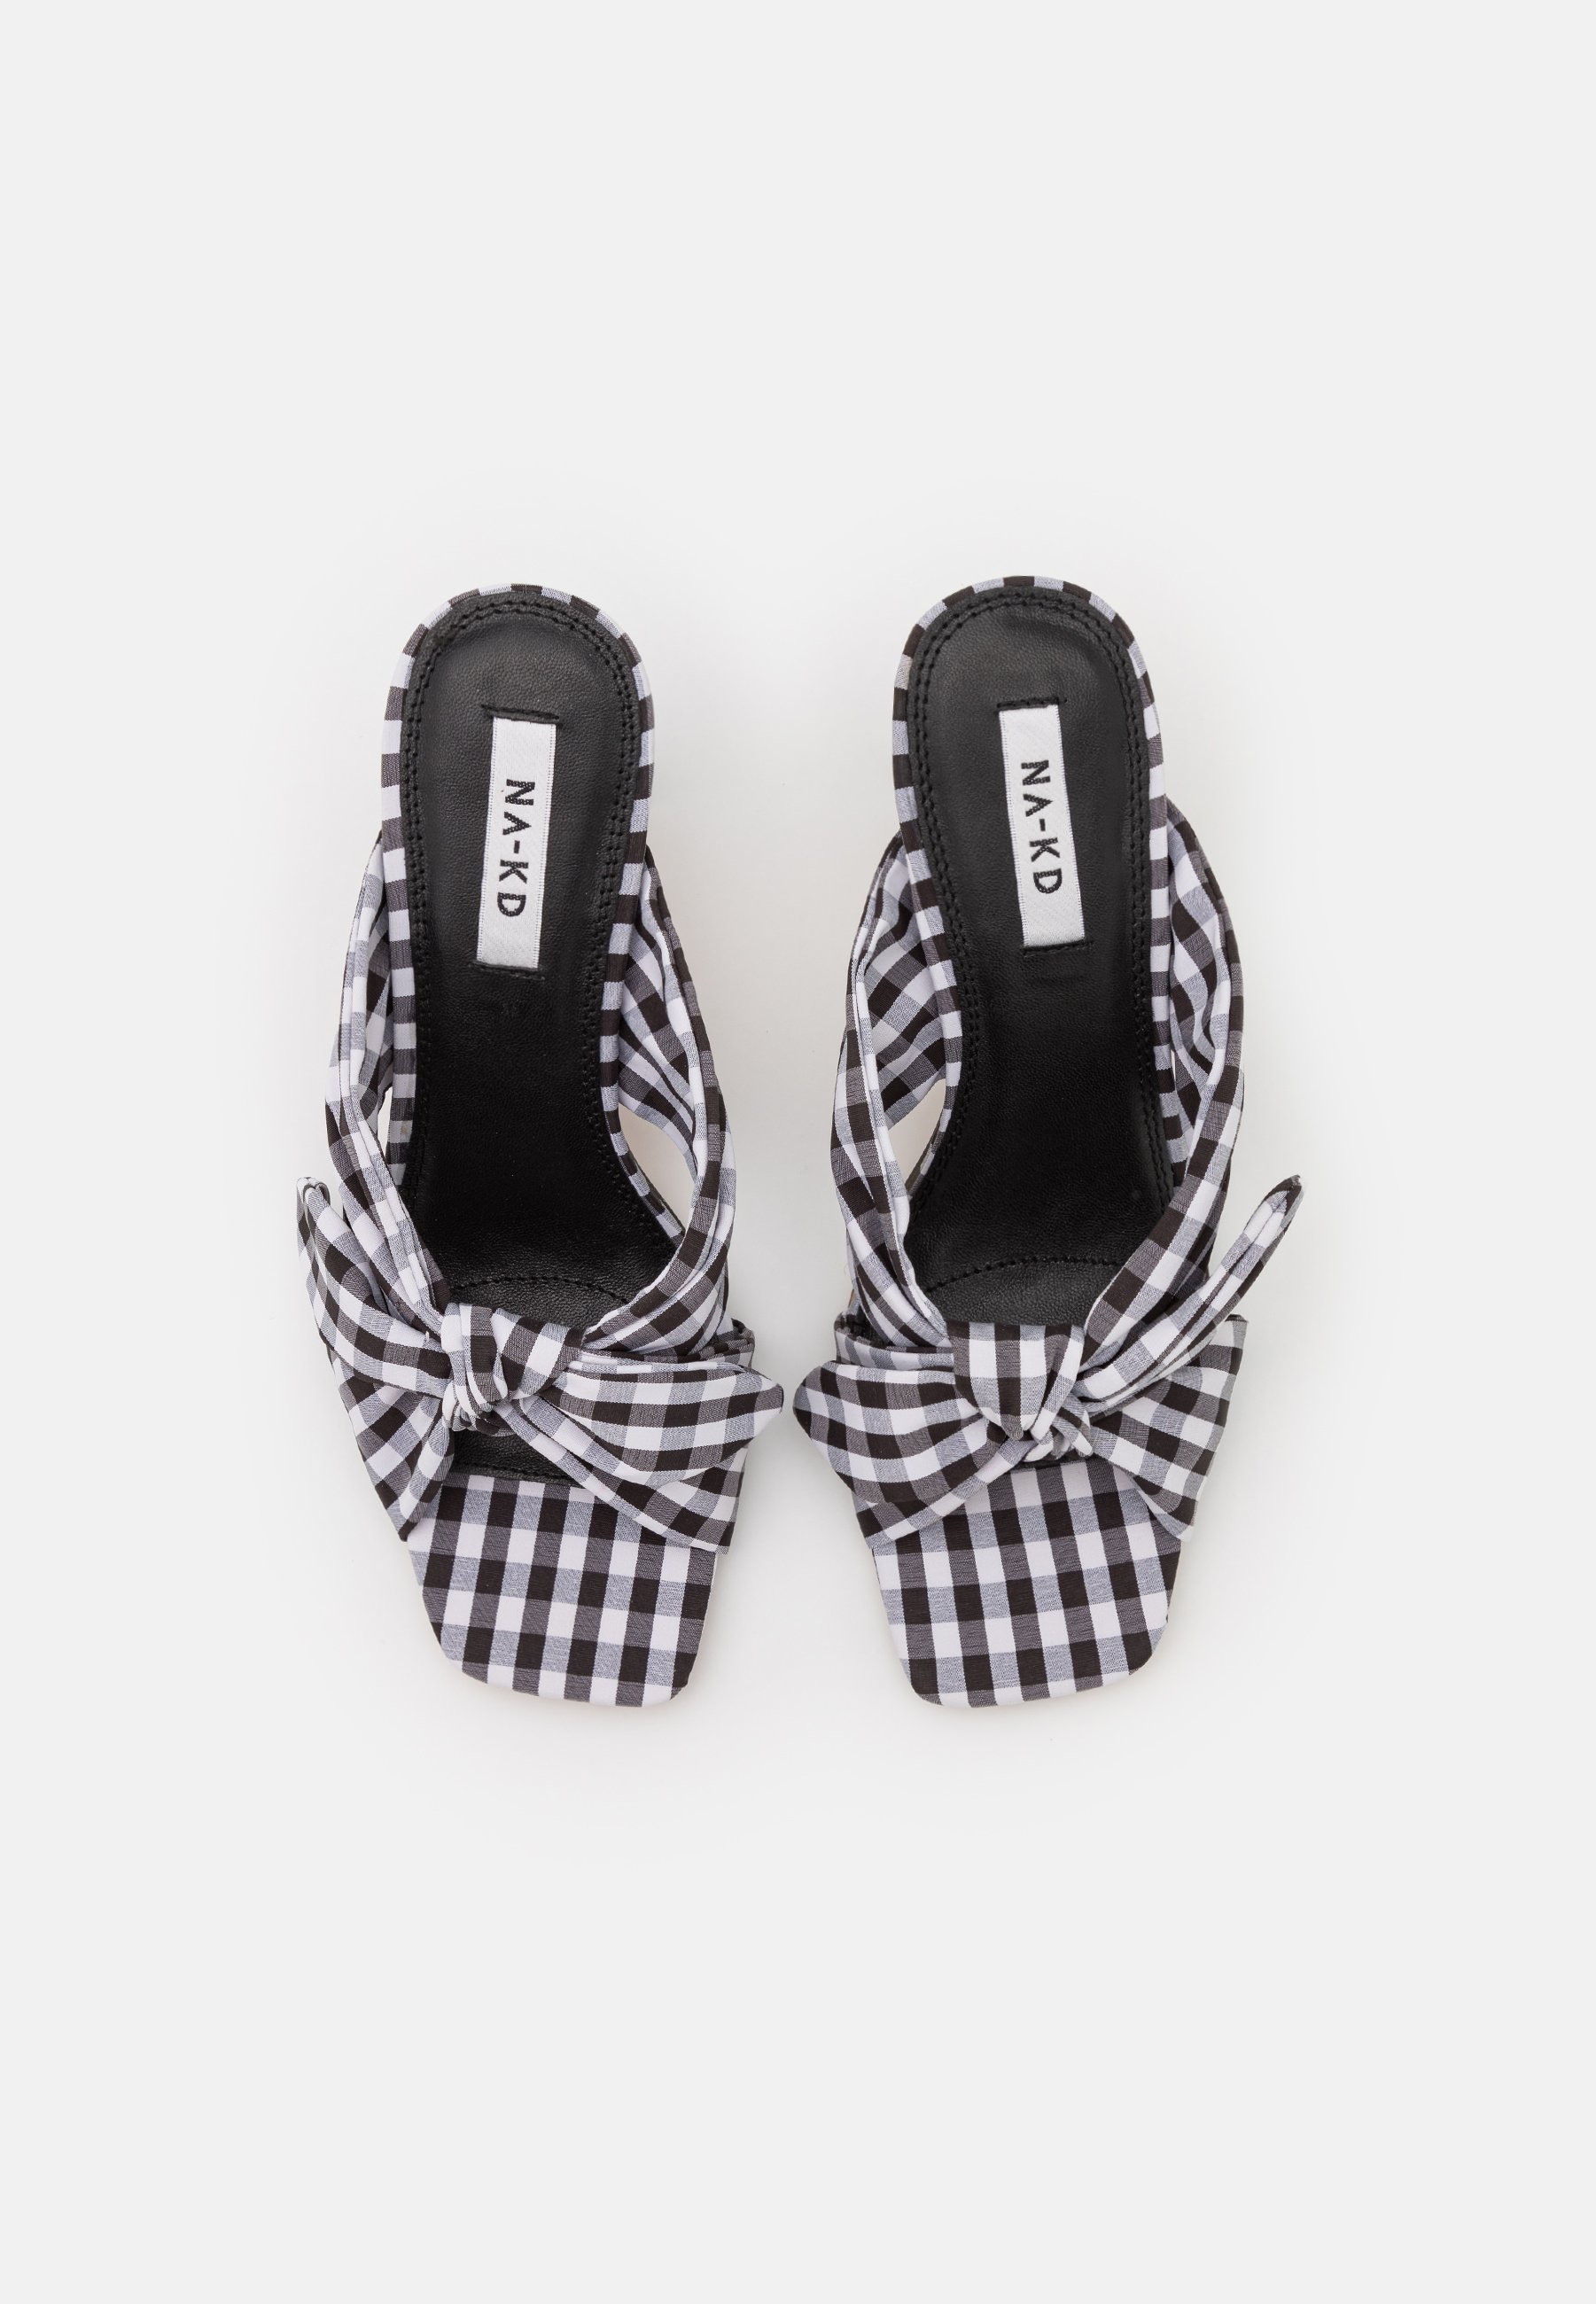 Women CHECKERED BOW MULES - Heeled mules